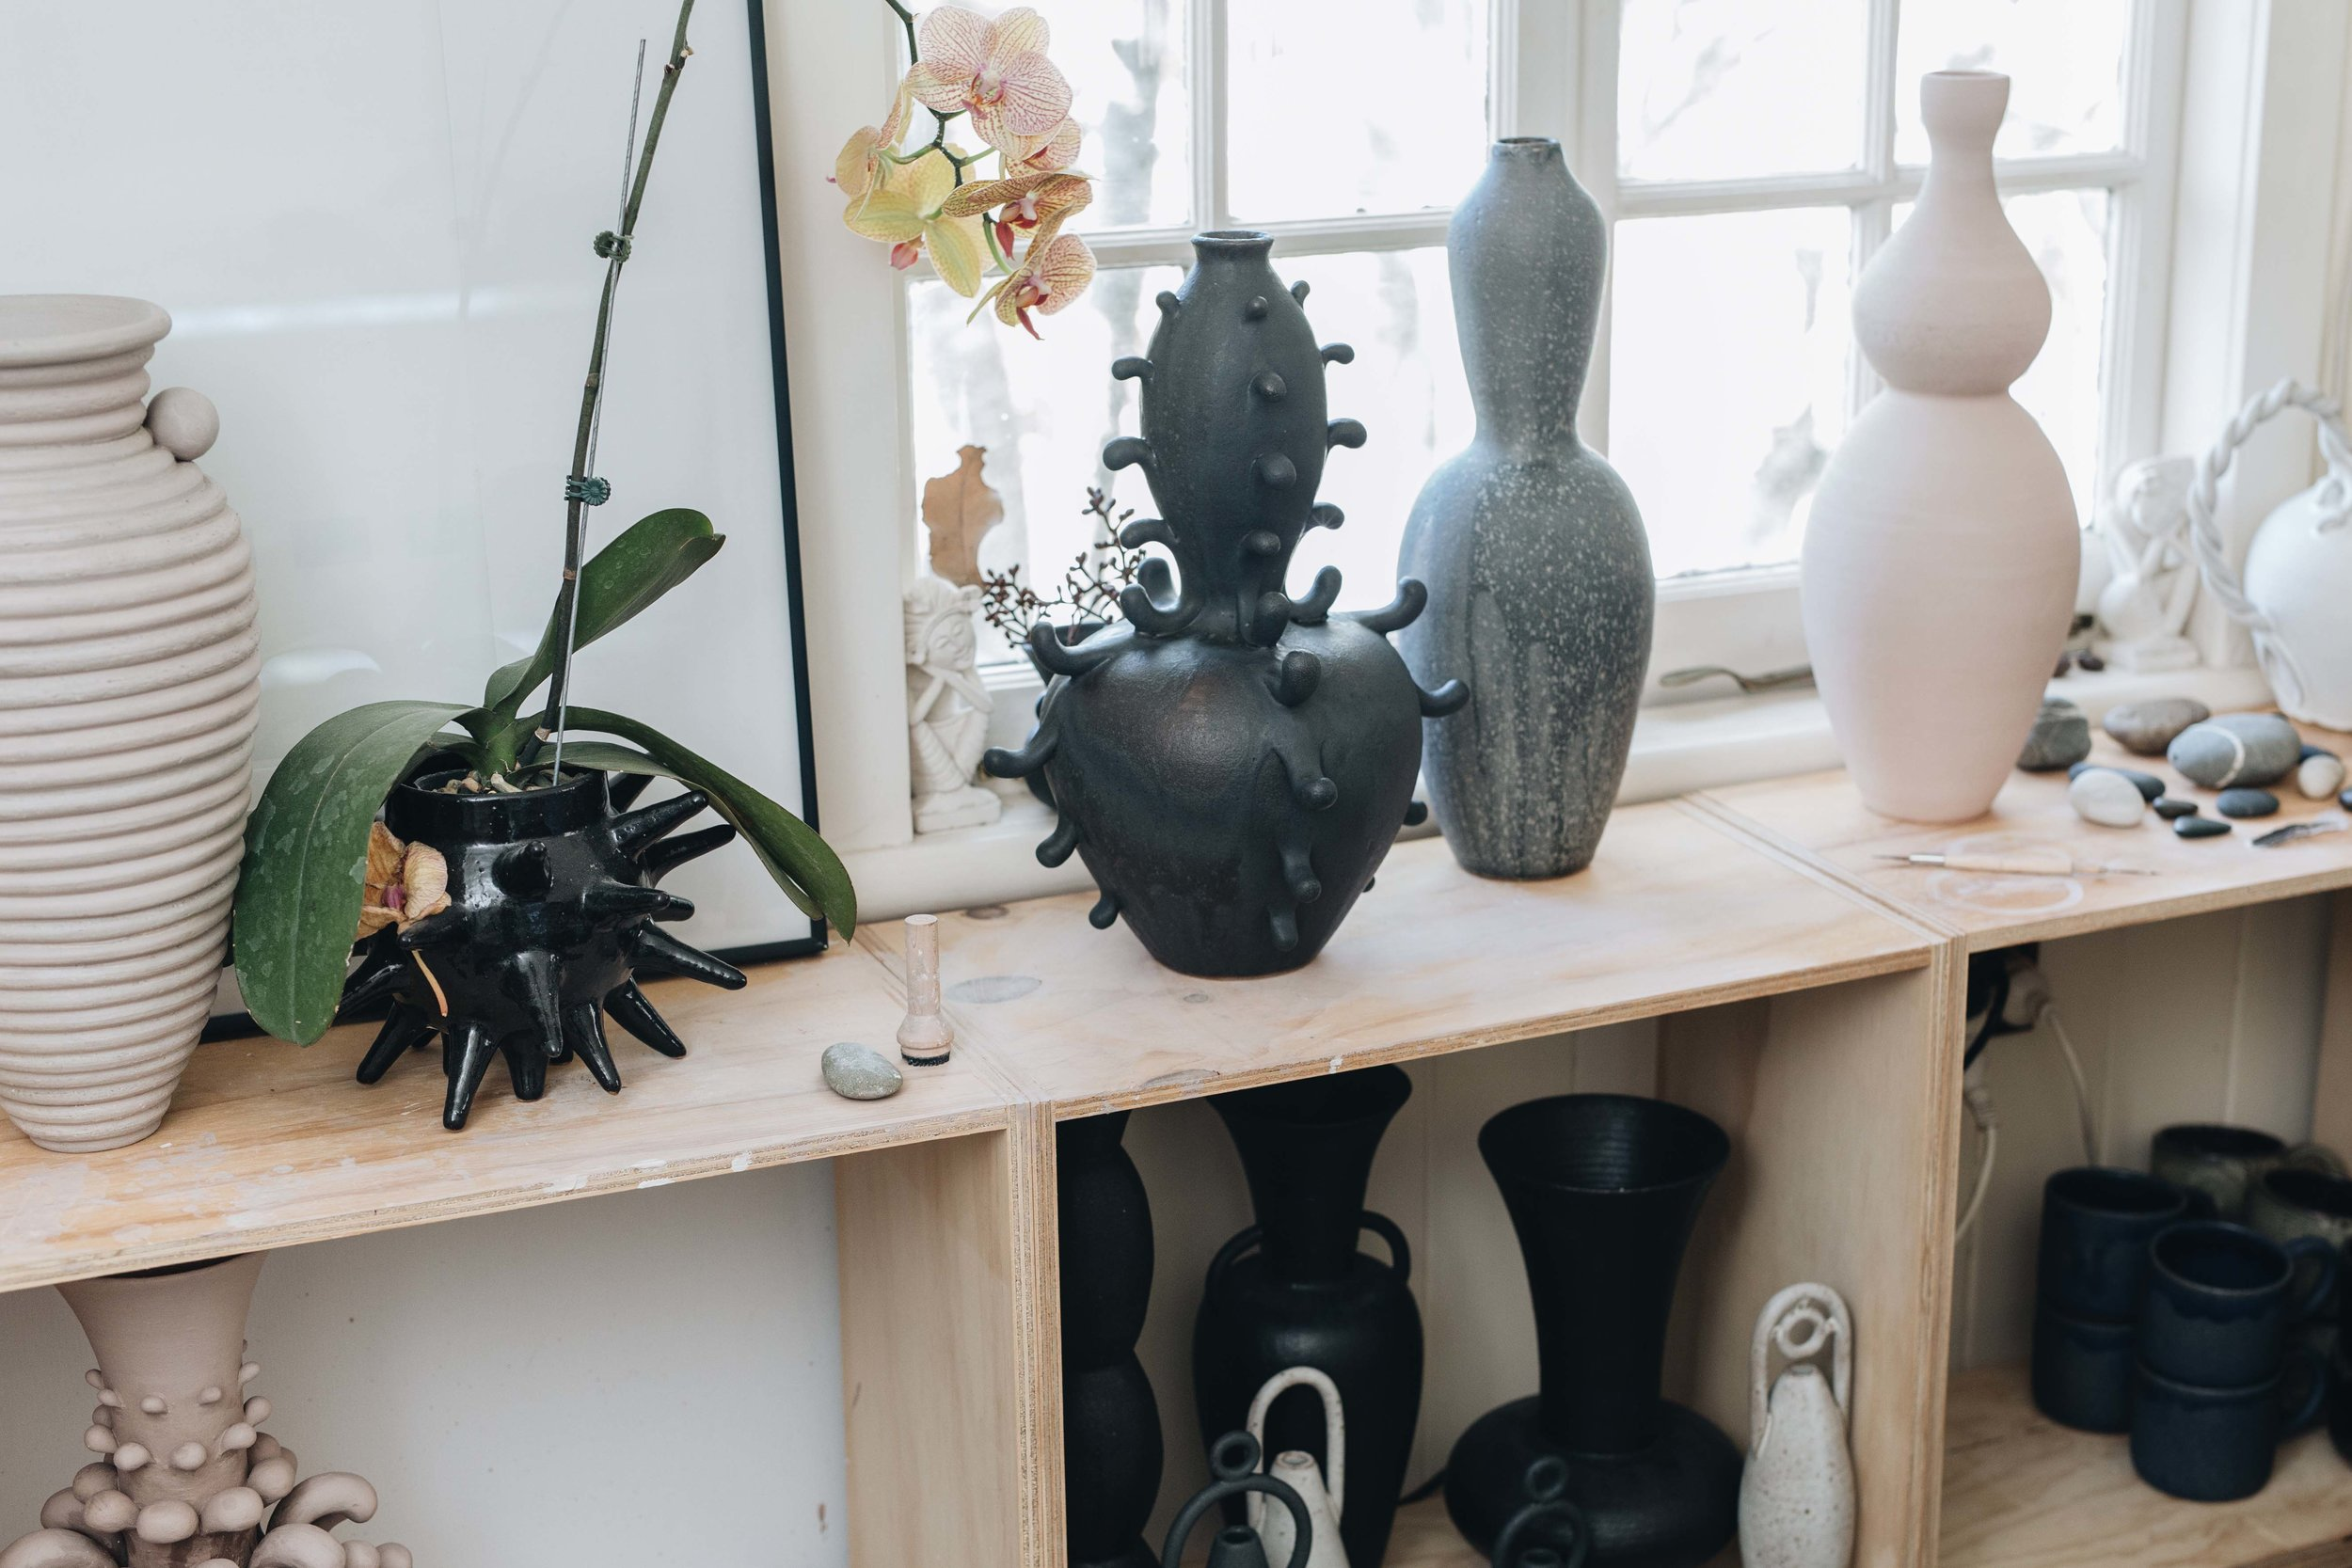 Shelves full of vessels in Nicolette's home studio